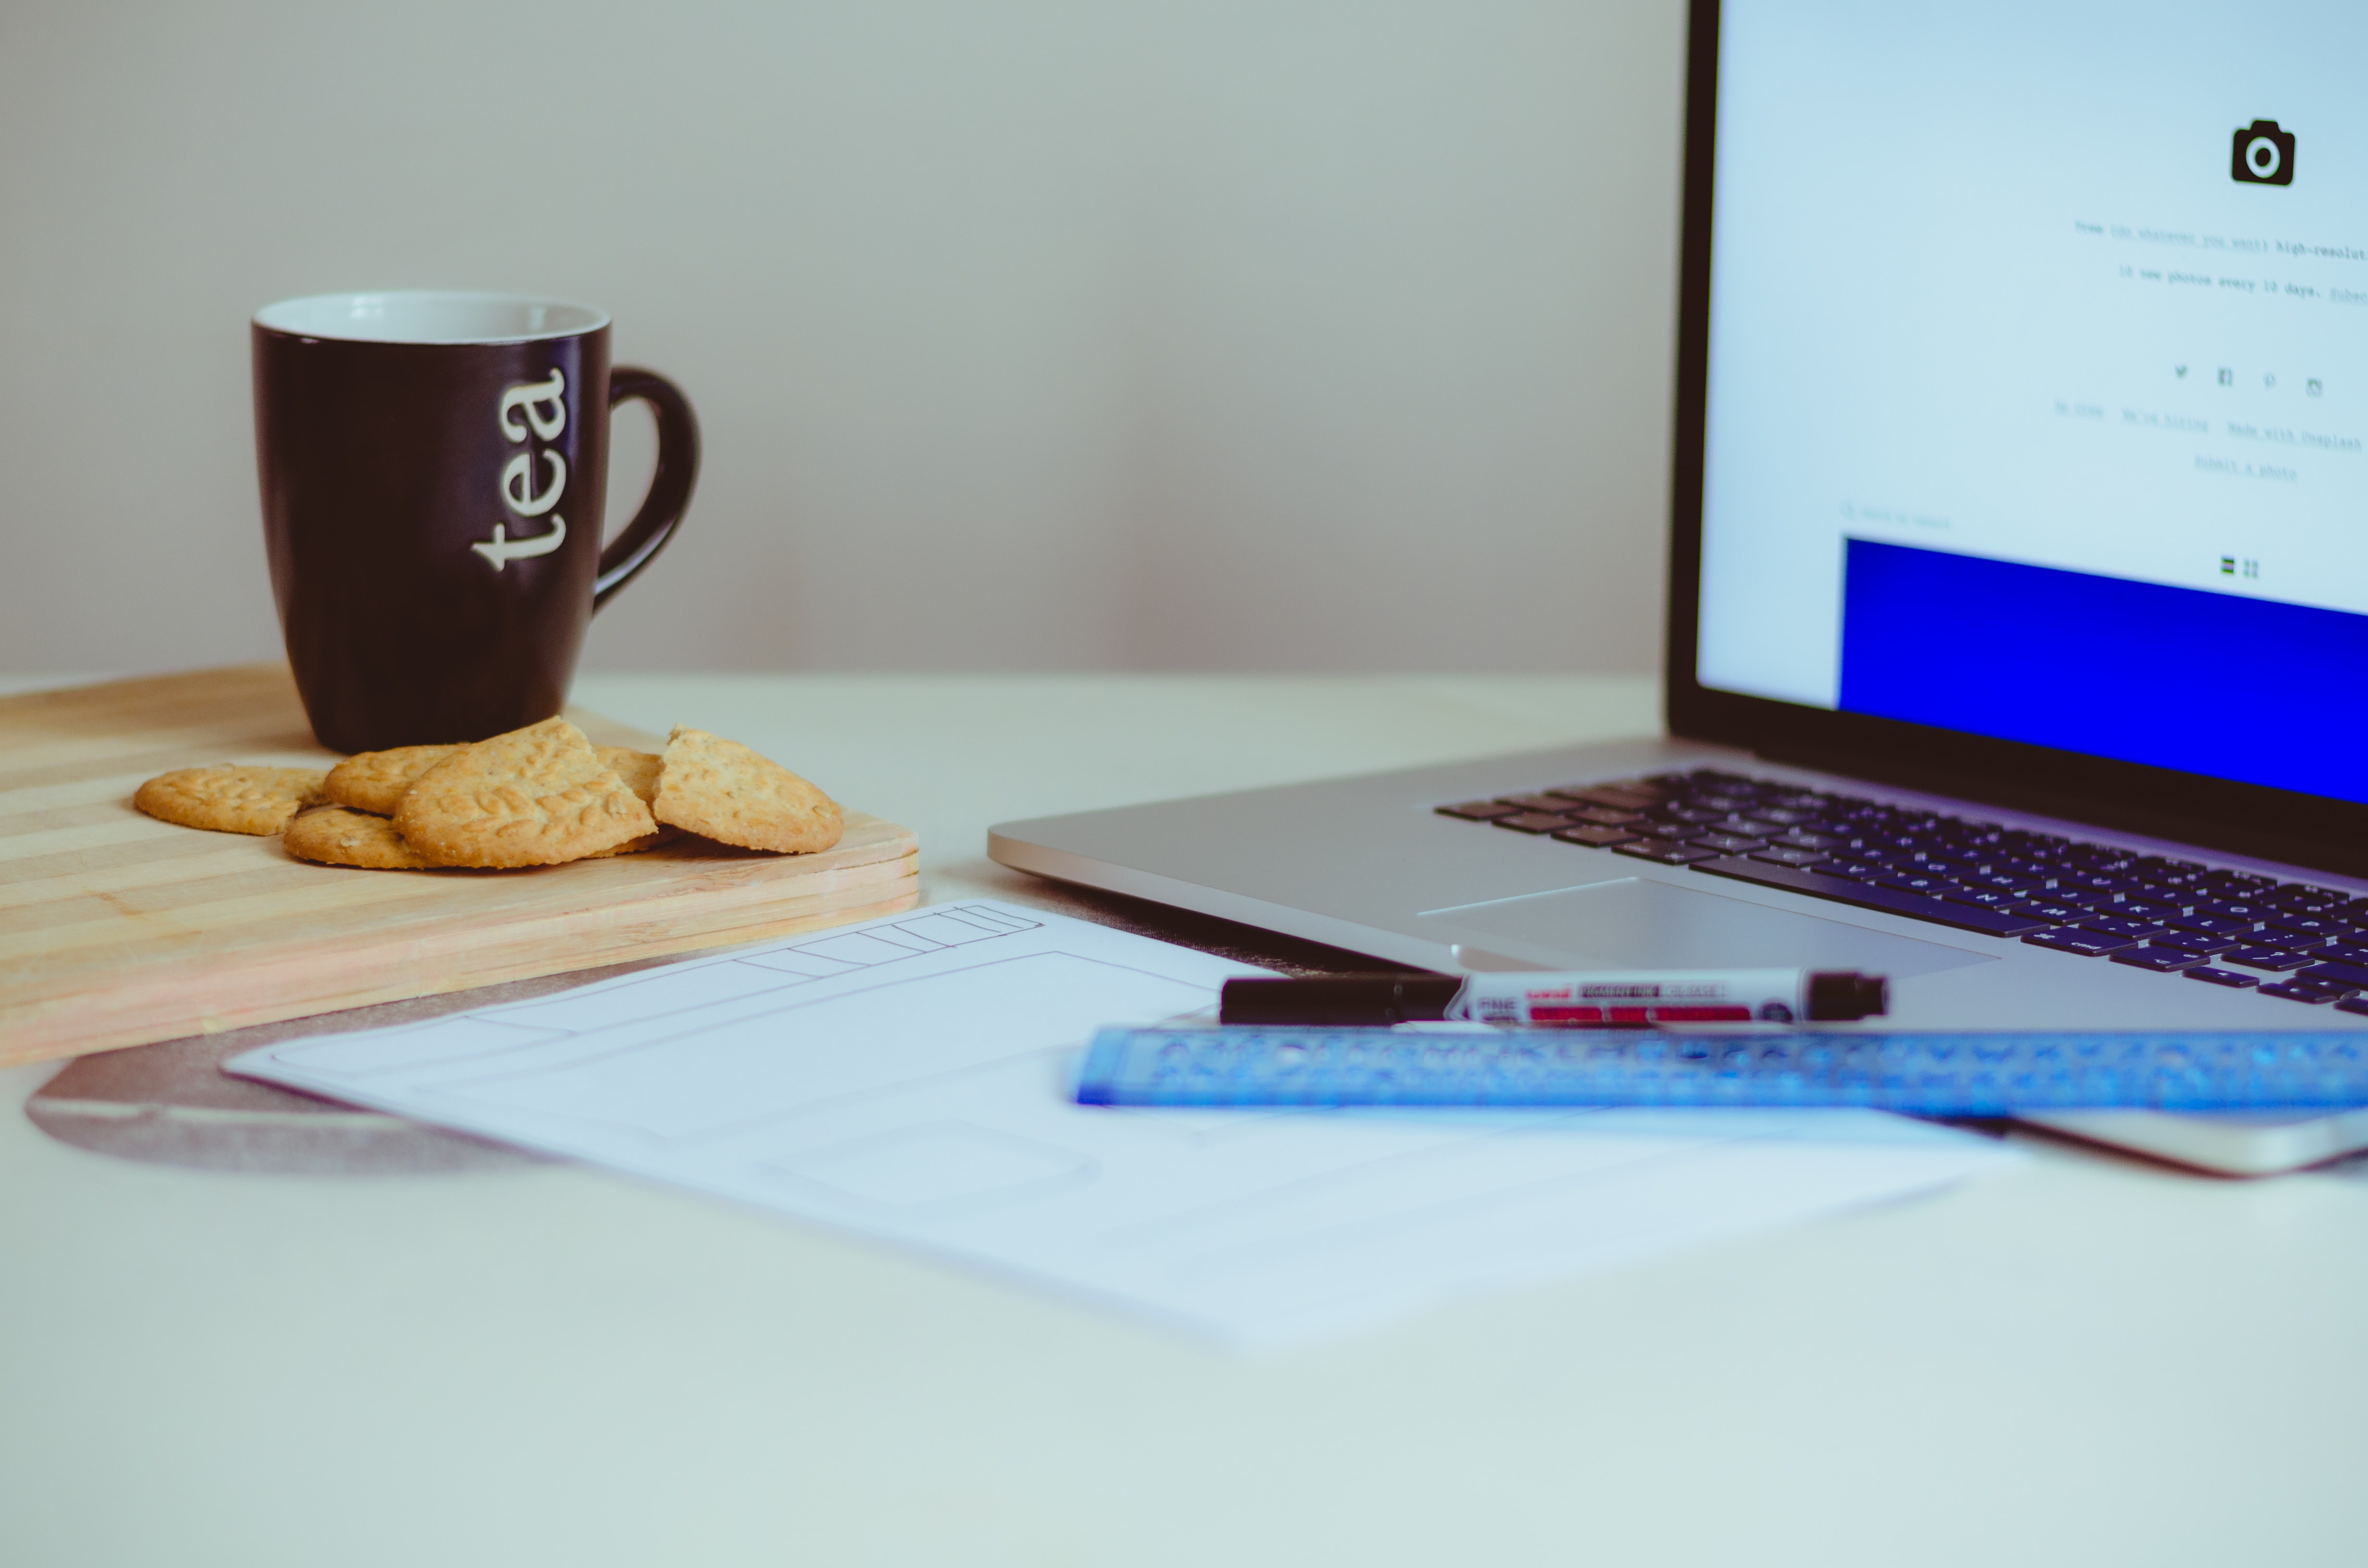 Tea and cookies on a wooden board near a laptop on a white workspace